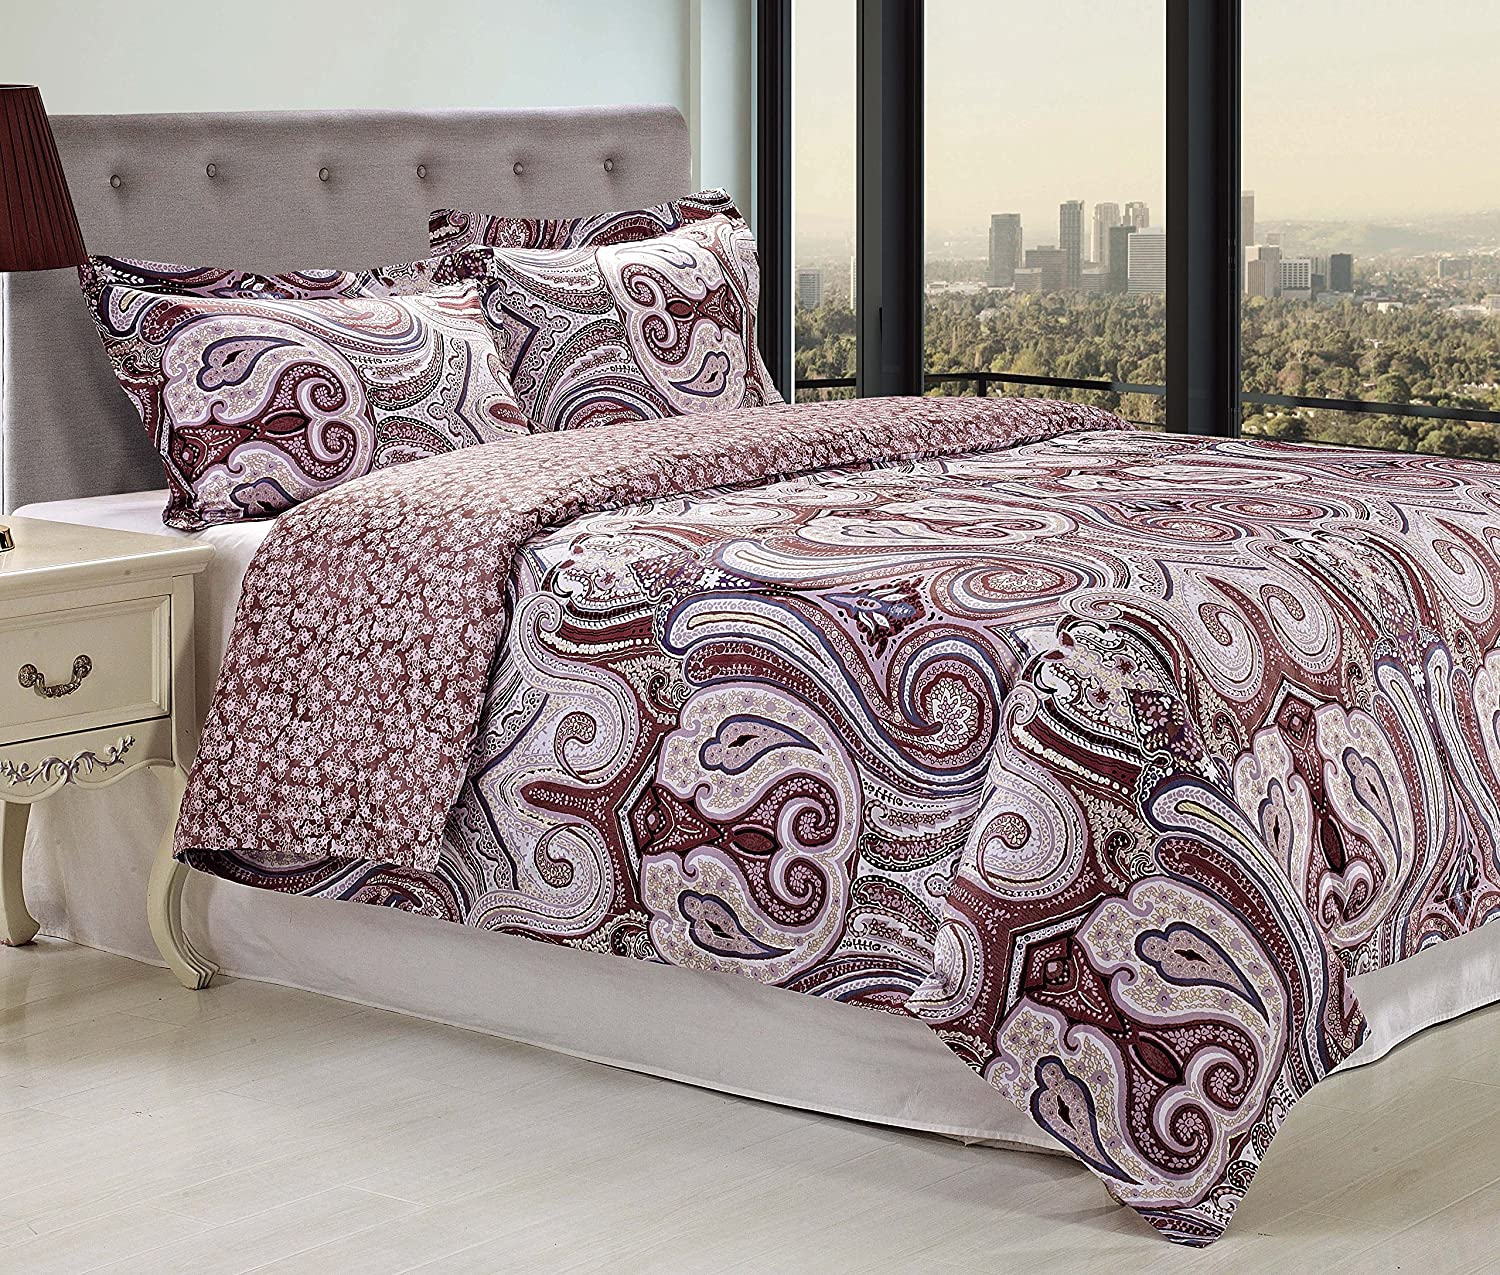 Superior 300 Thread Count Waterloo Duvet Cover Set, Full/Queen